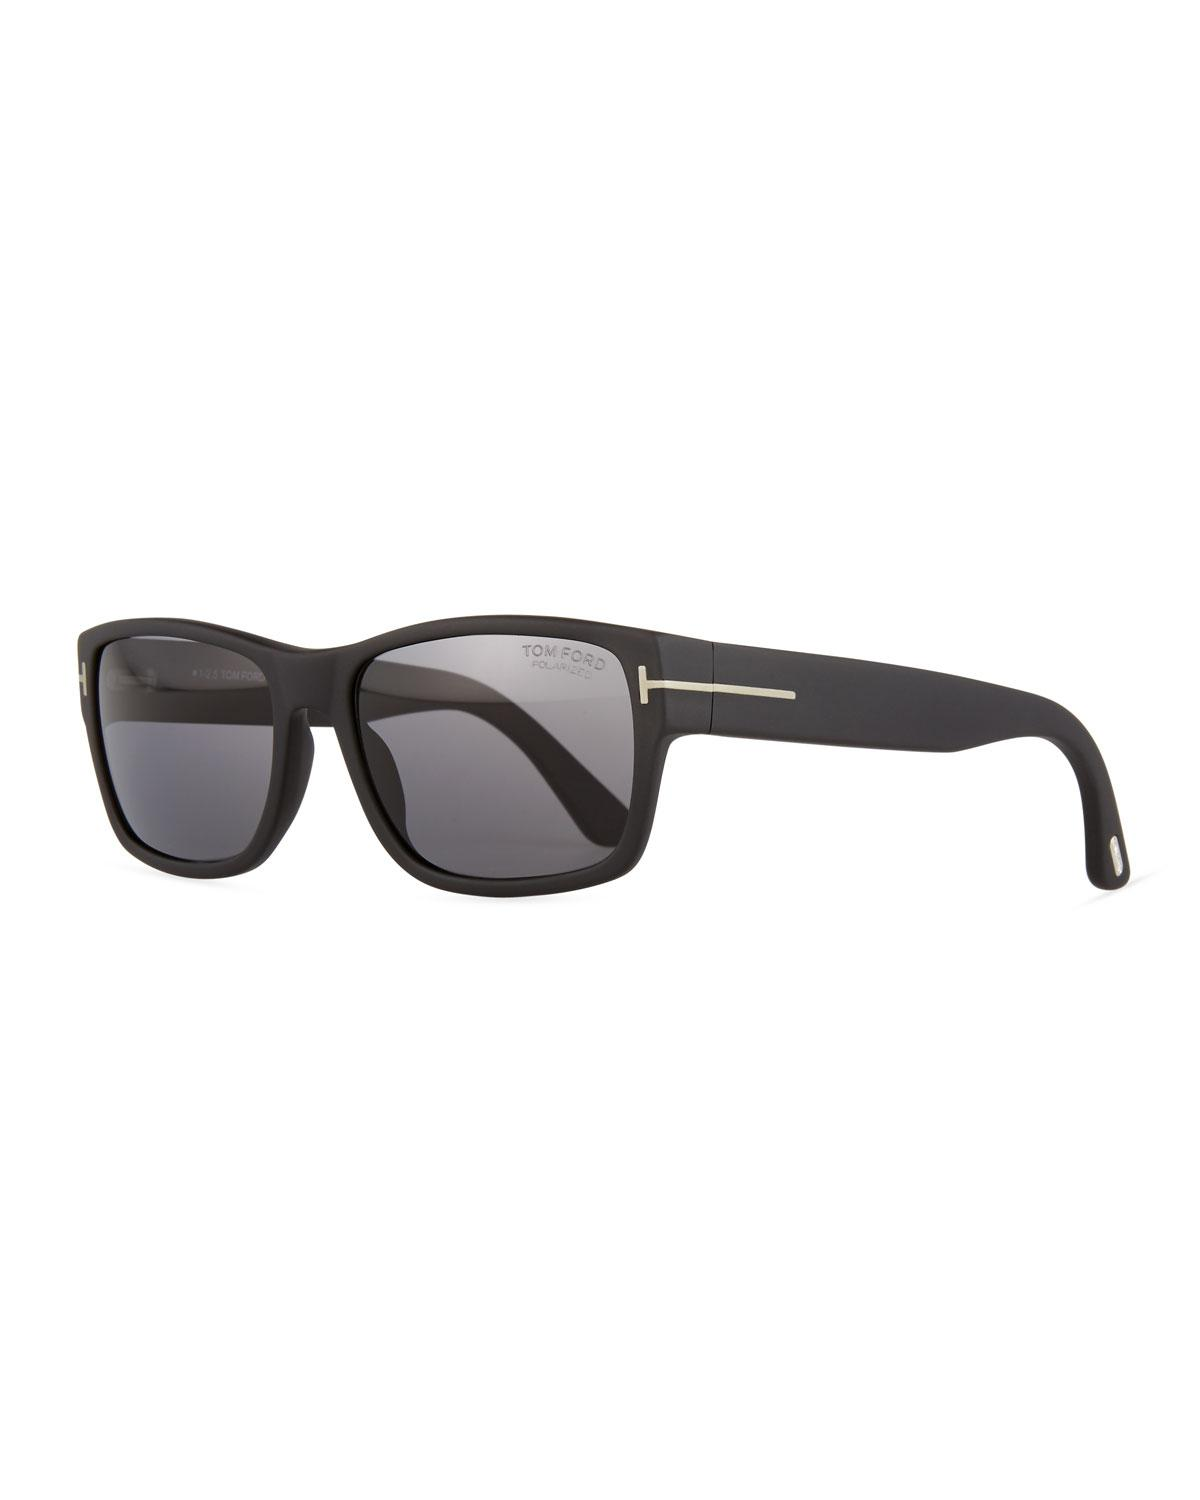 9664b5972bf Tom Ford - Black Mason Matte Polarized Sunglasses for Men - Lyst. View  fullscreen